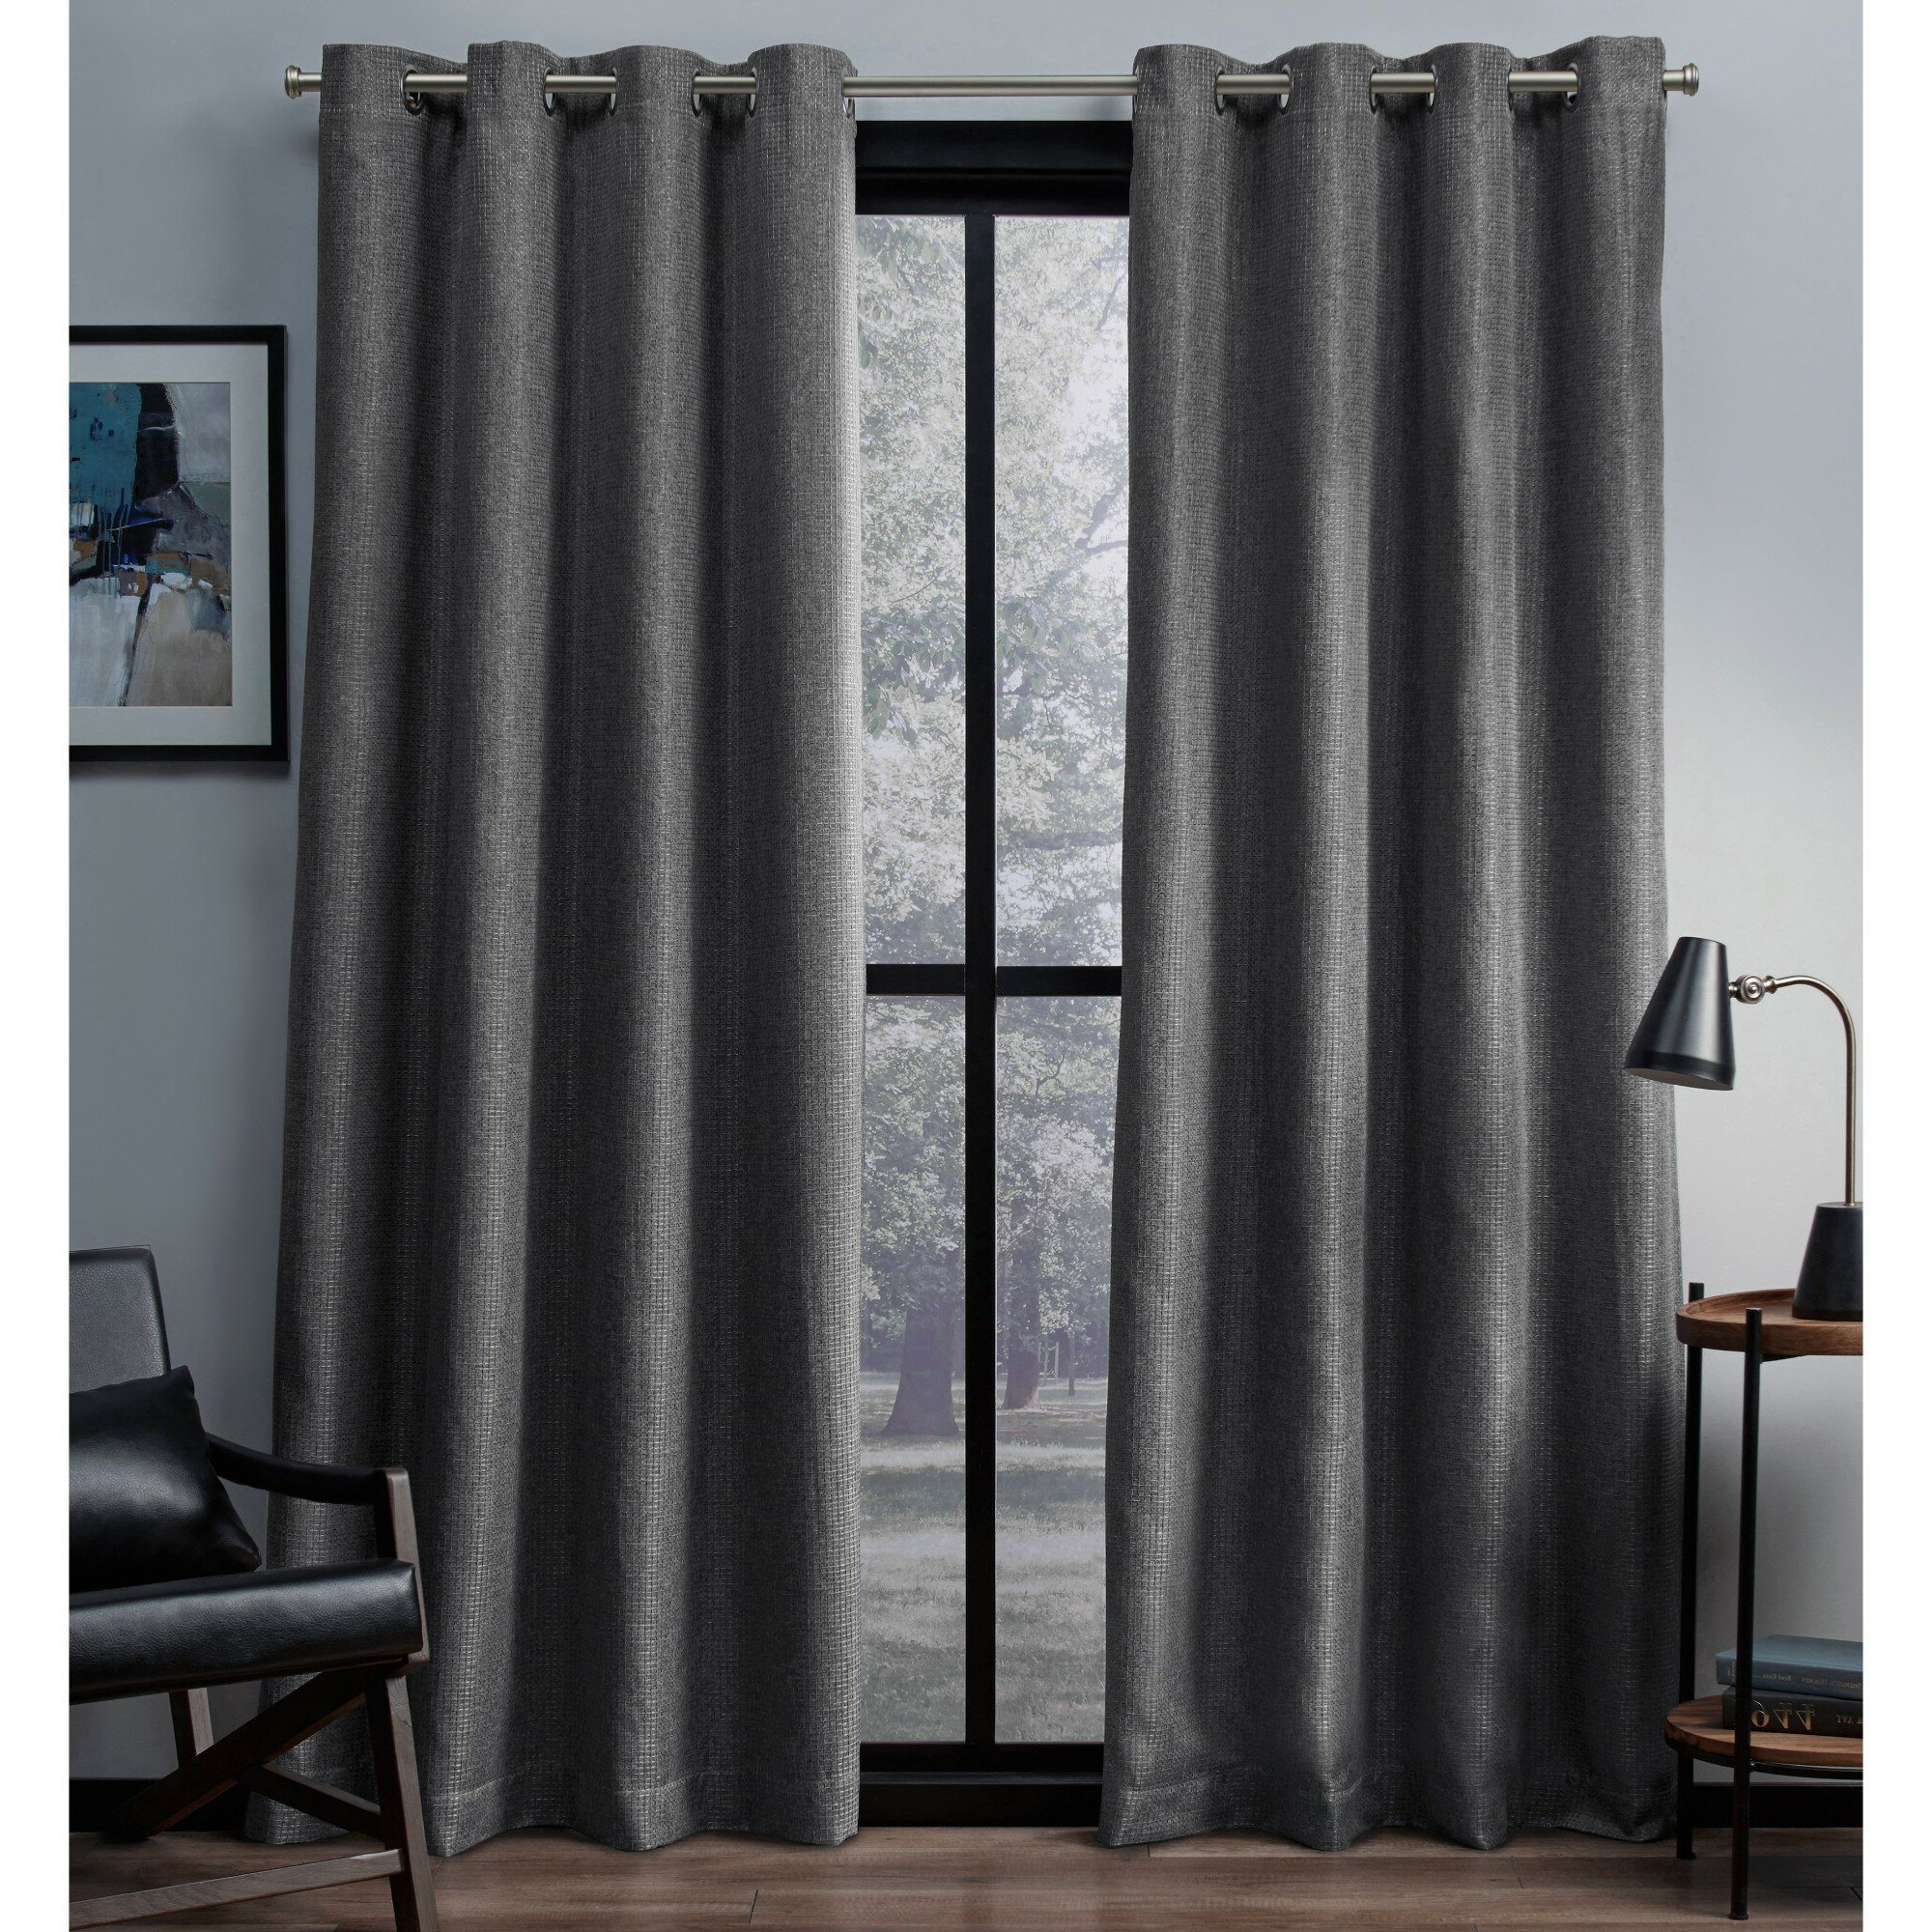 Popular Dayse Solid Max Blackout Thermal Grommet Curtain Panels With Regard To Cooper Textured Thermal Insulated Grommet Curtain Panels (View 16 of 20)